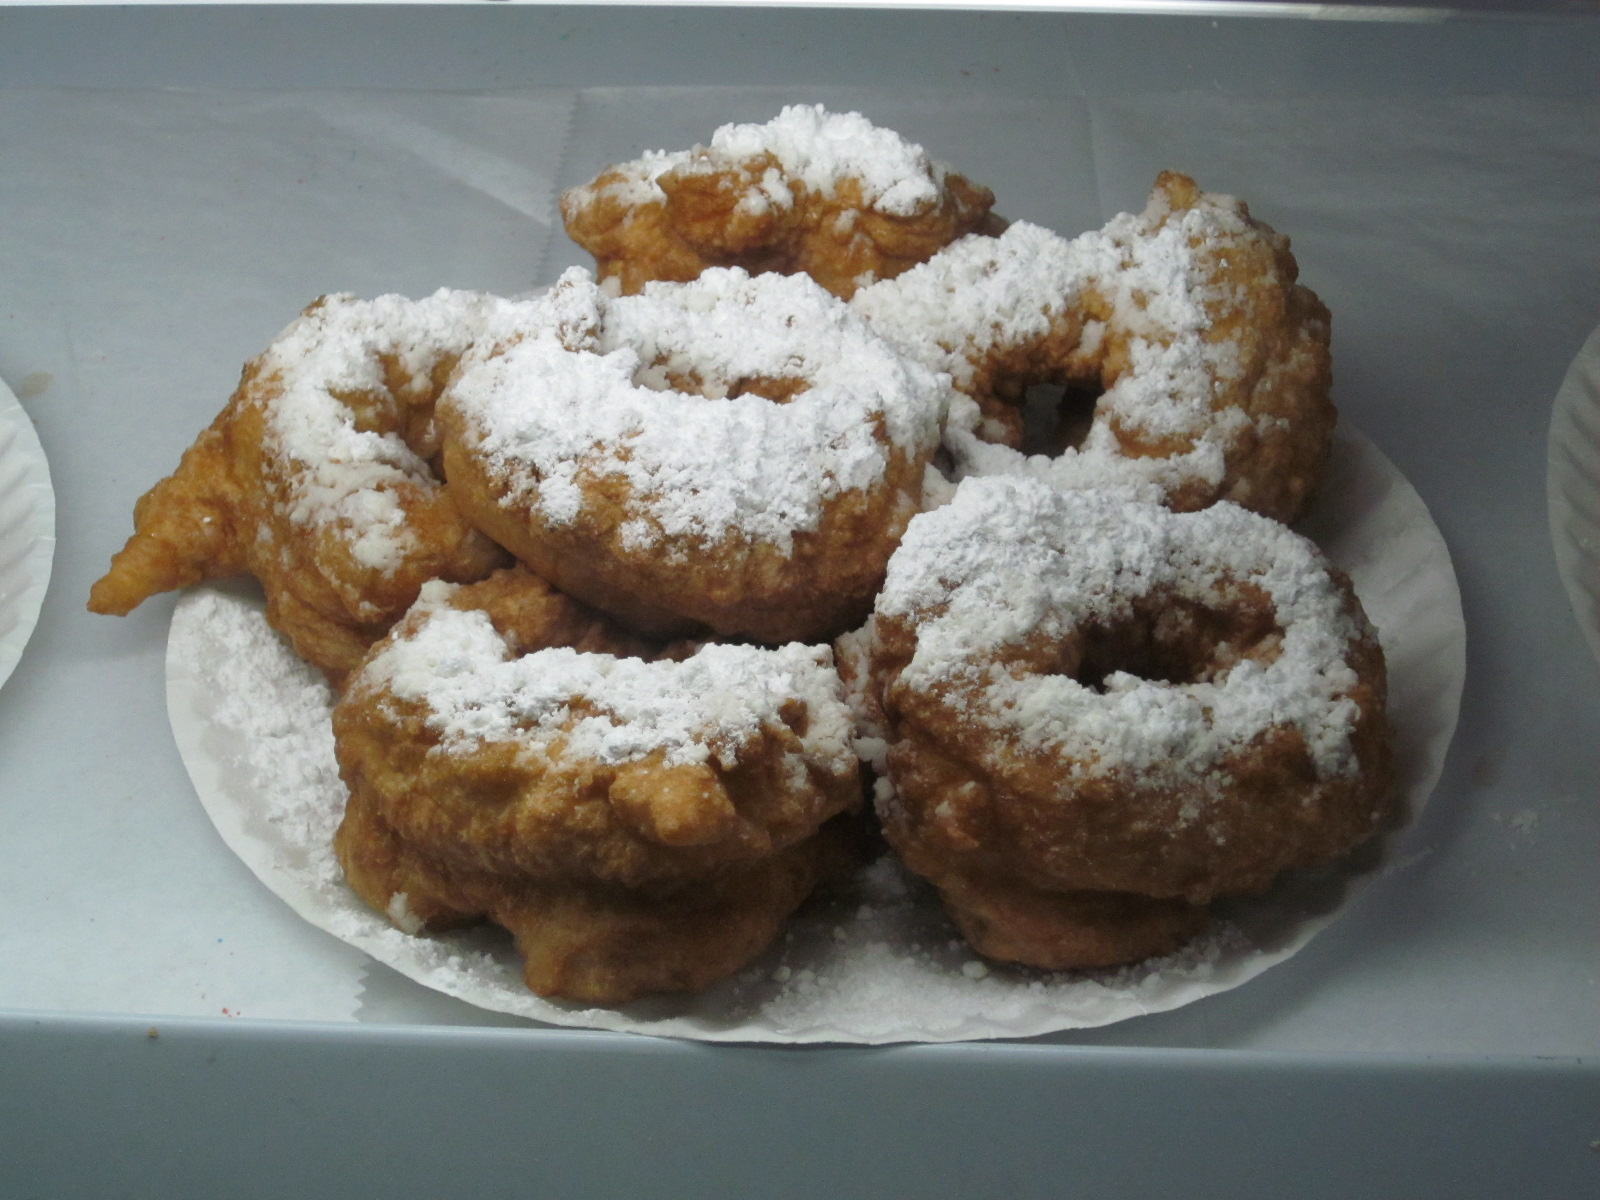 The star attraction zeppole on display, but the delectable fresh fare ...